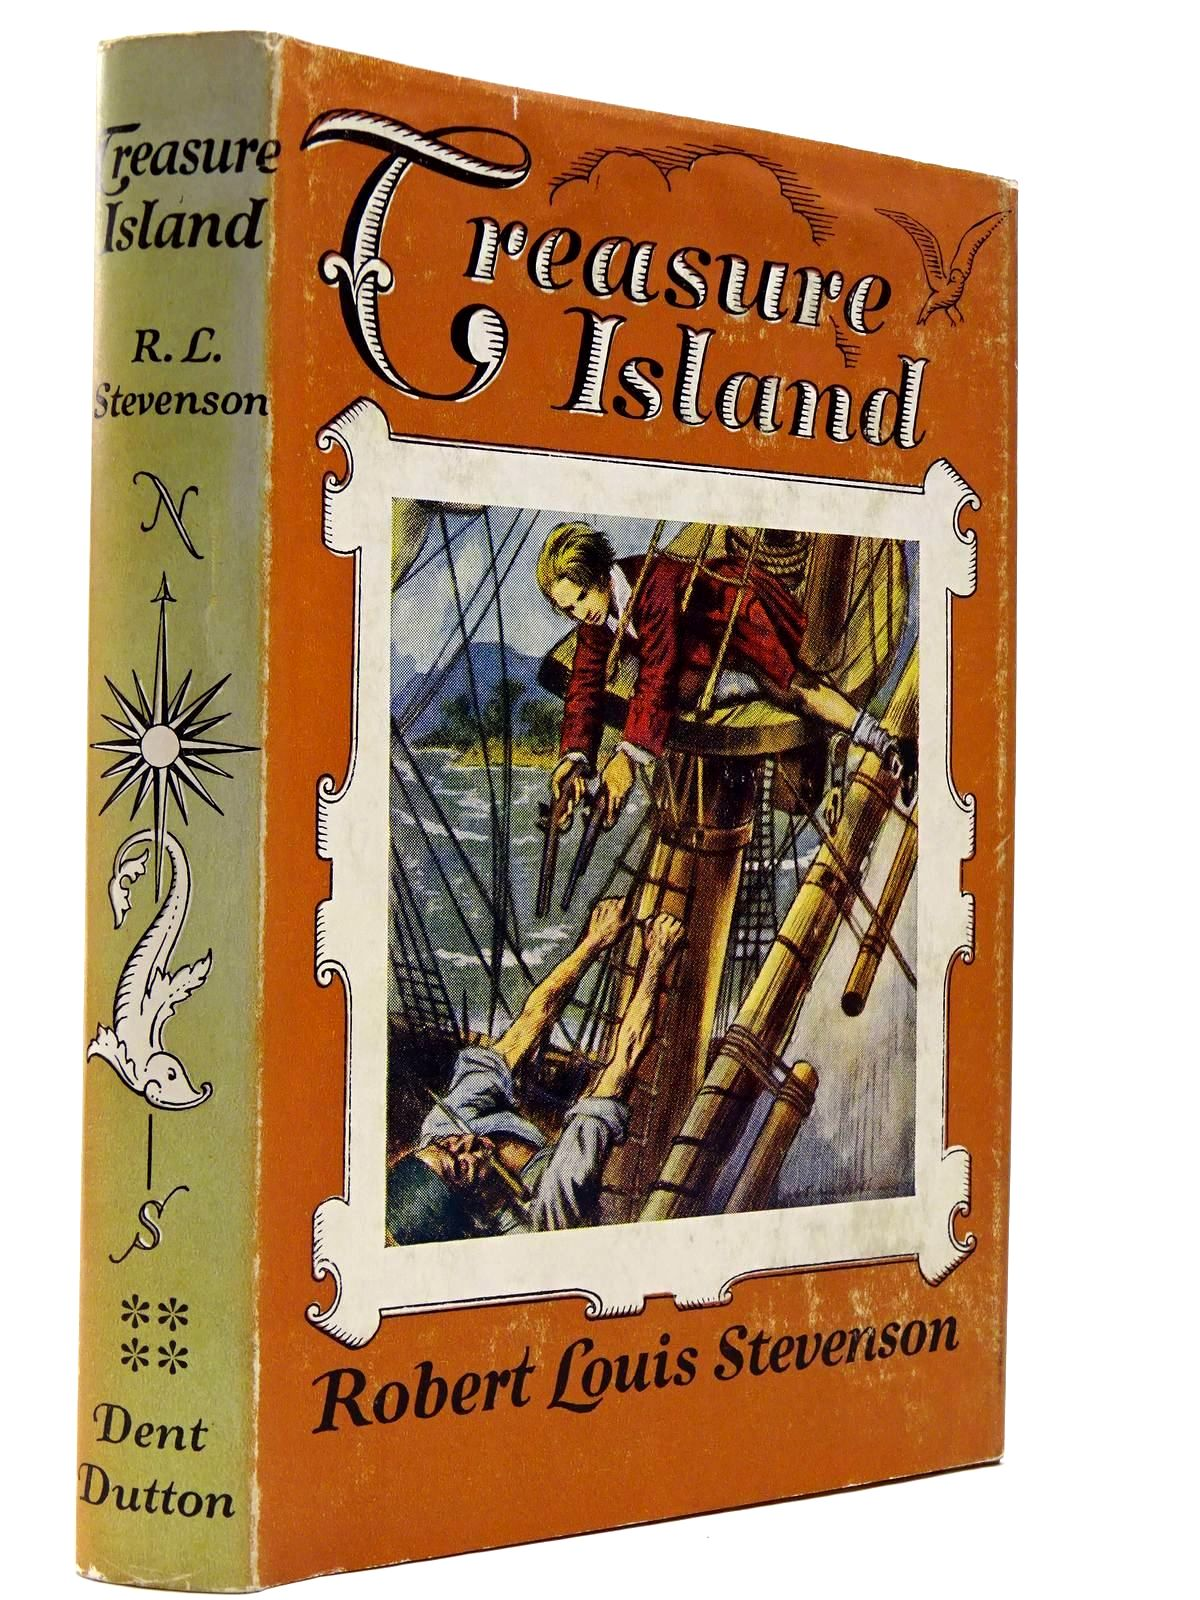 Photo of TREASURE ISLAND written by Stevenson, Robert Louis illustrated by Van Abbe, S. published by J.M. Dent & Sons Ltd. (STOCK CODE: 2129438)  for sale by Stella & Rose's Books